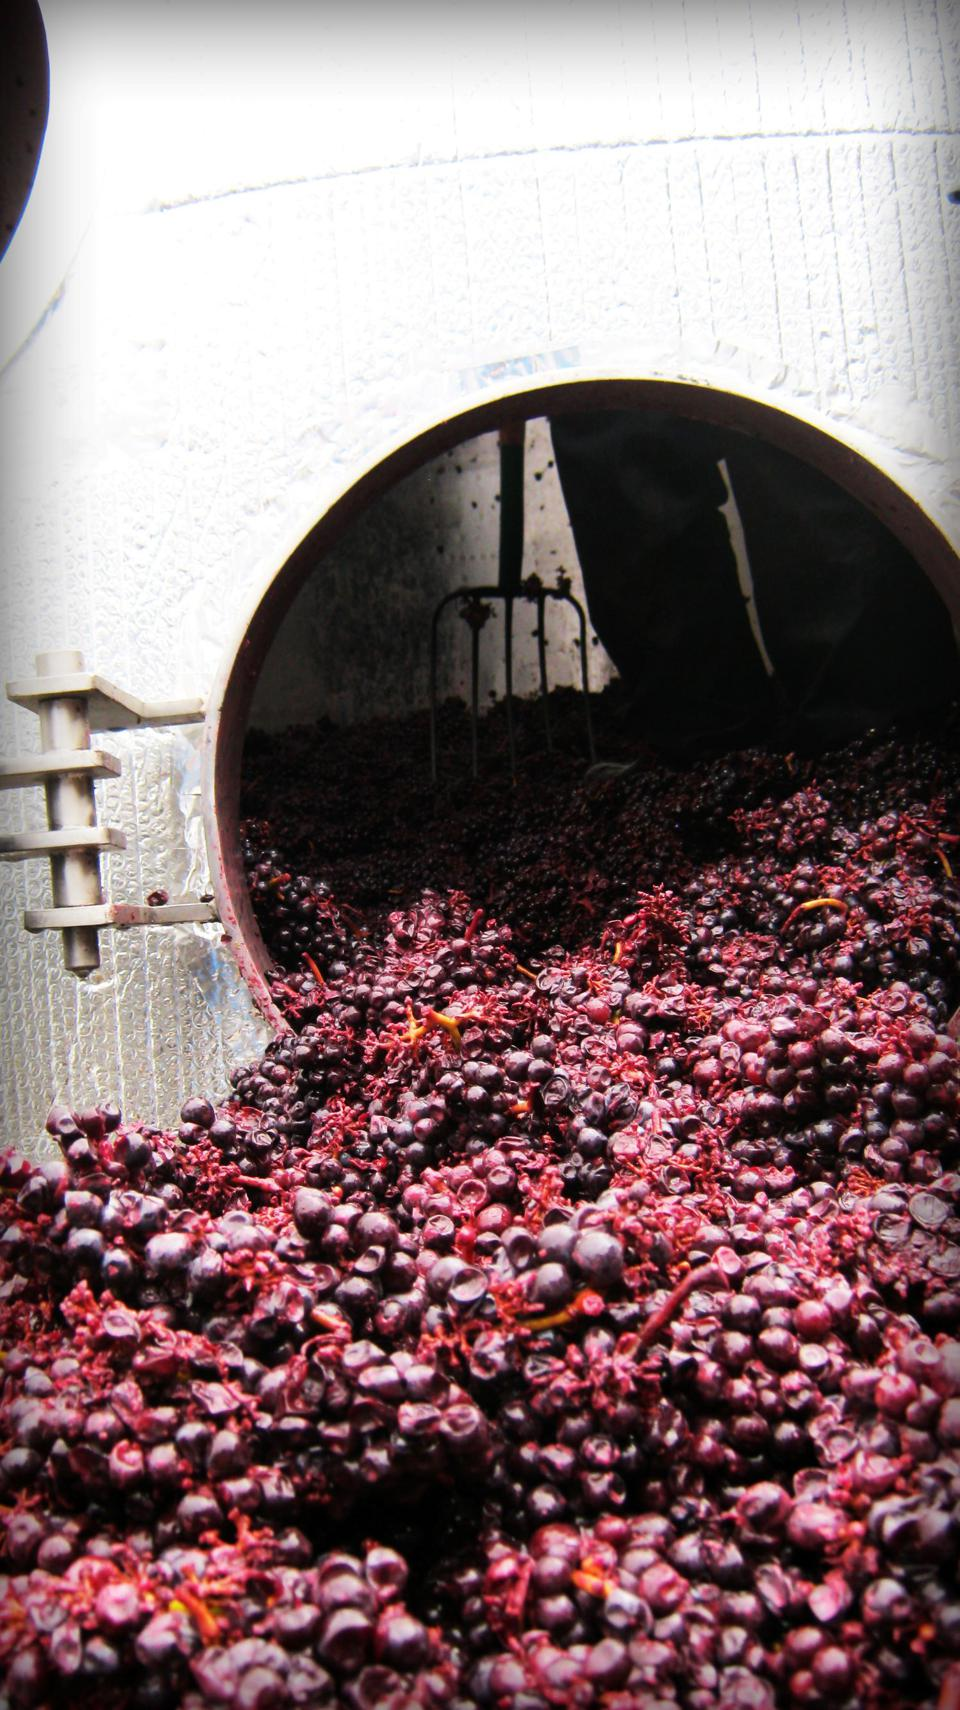 Whole cluster Pinot noir grapes being emptied from a fermentation tank prior to being crushed.